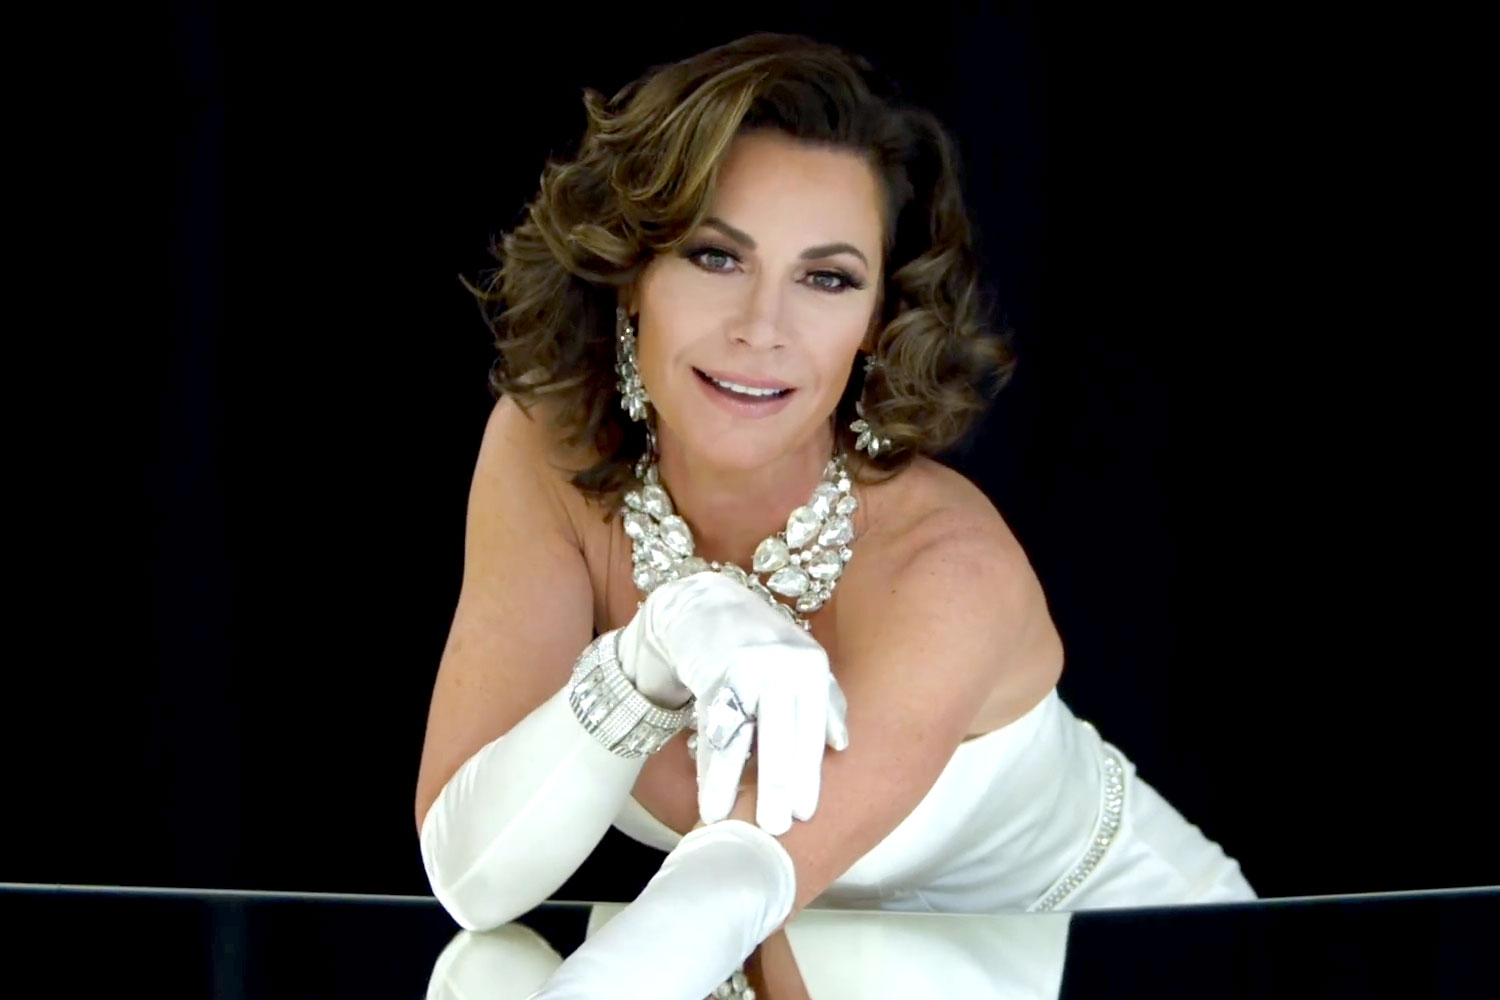 luann-delesseps-feelin-jovani music video